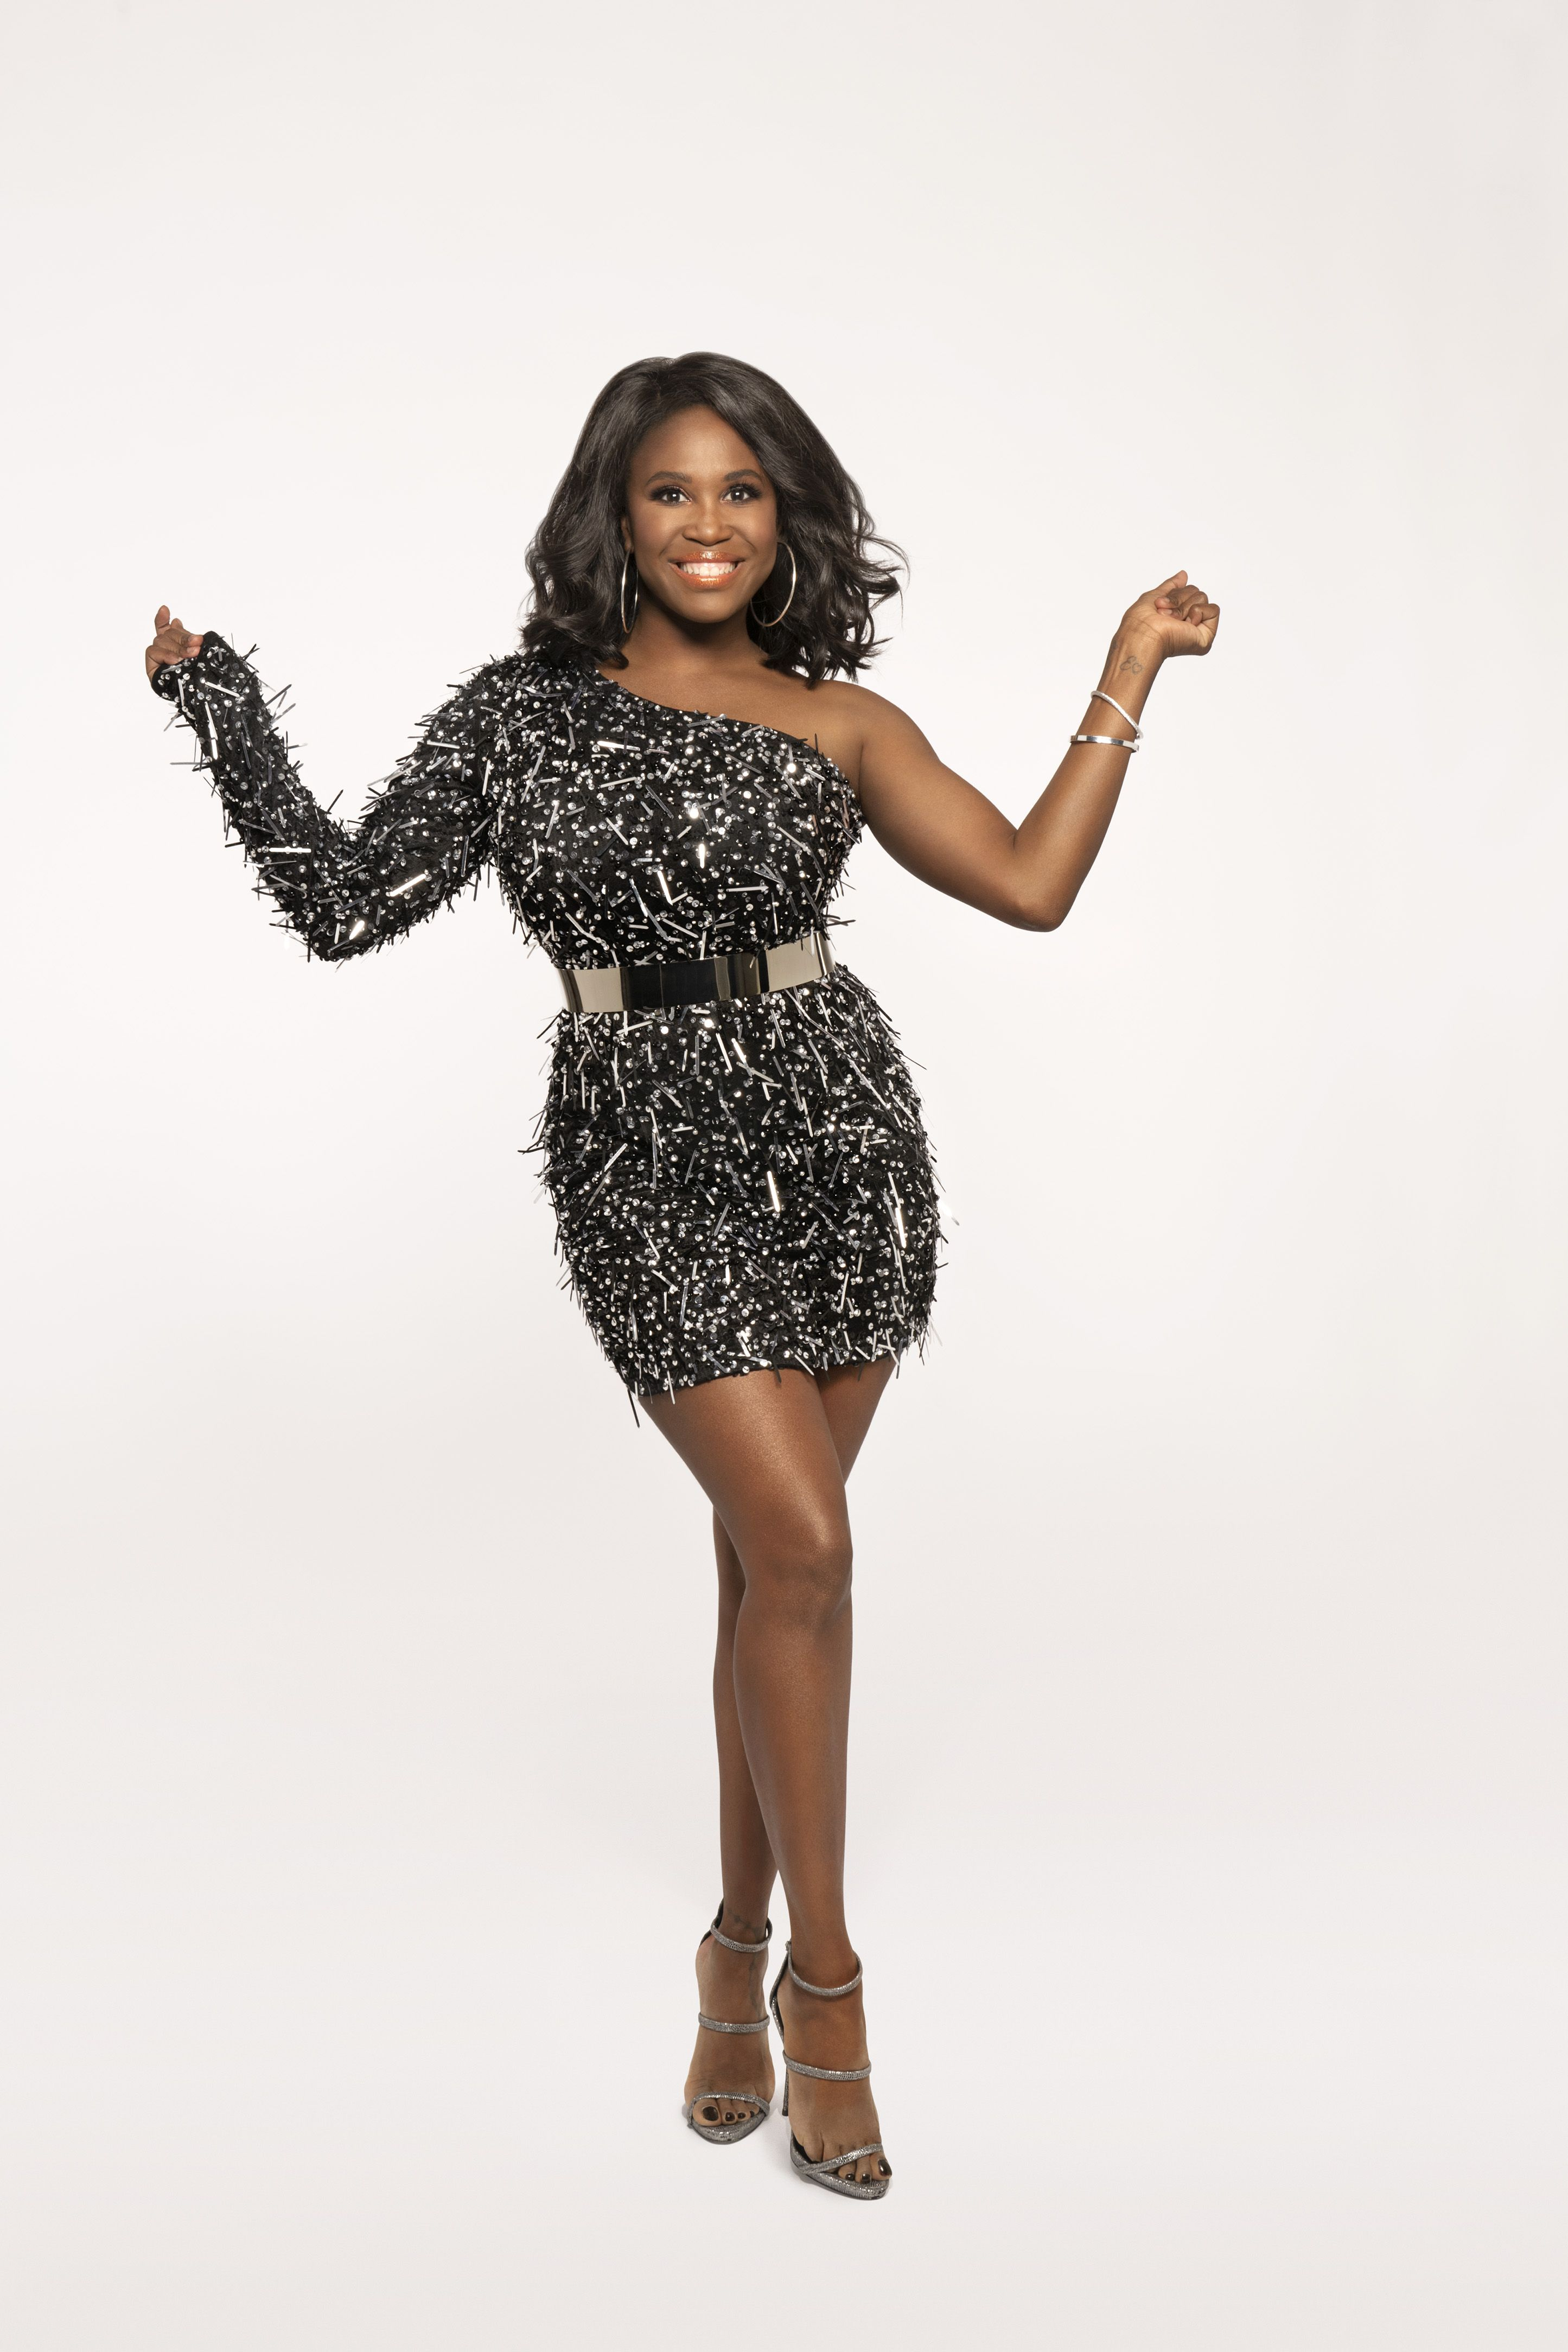 Strictly Come Dancing judge Motsi Mabuse hits back at claims she was only hired because of her race